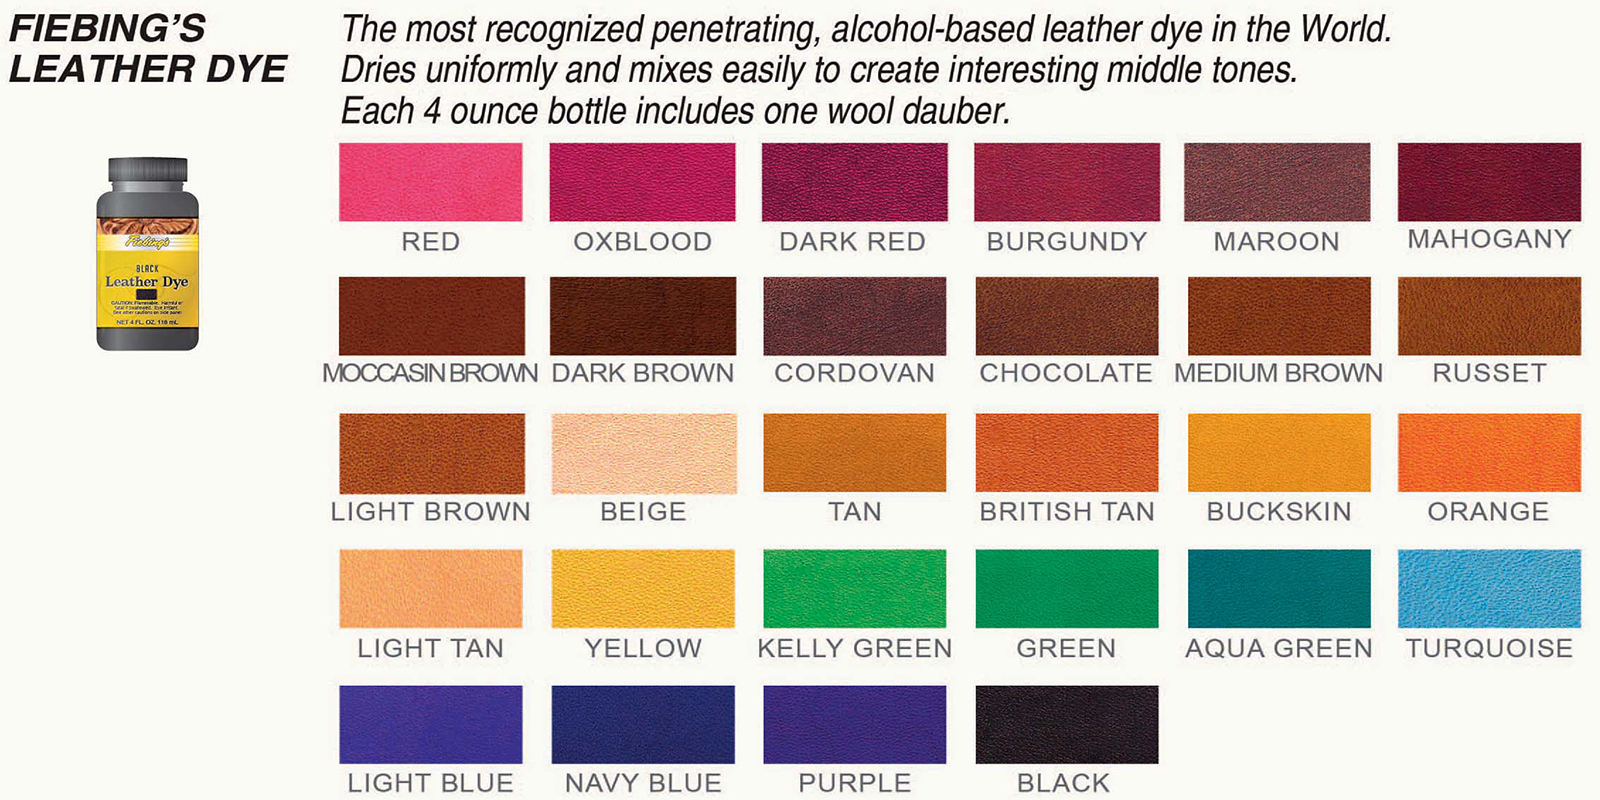 Fiebings Leather Dye Chart